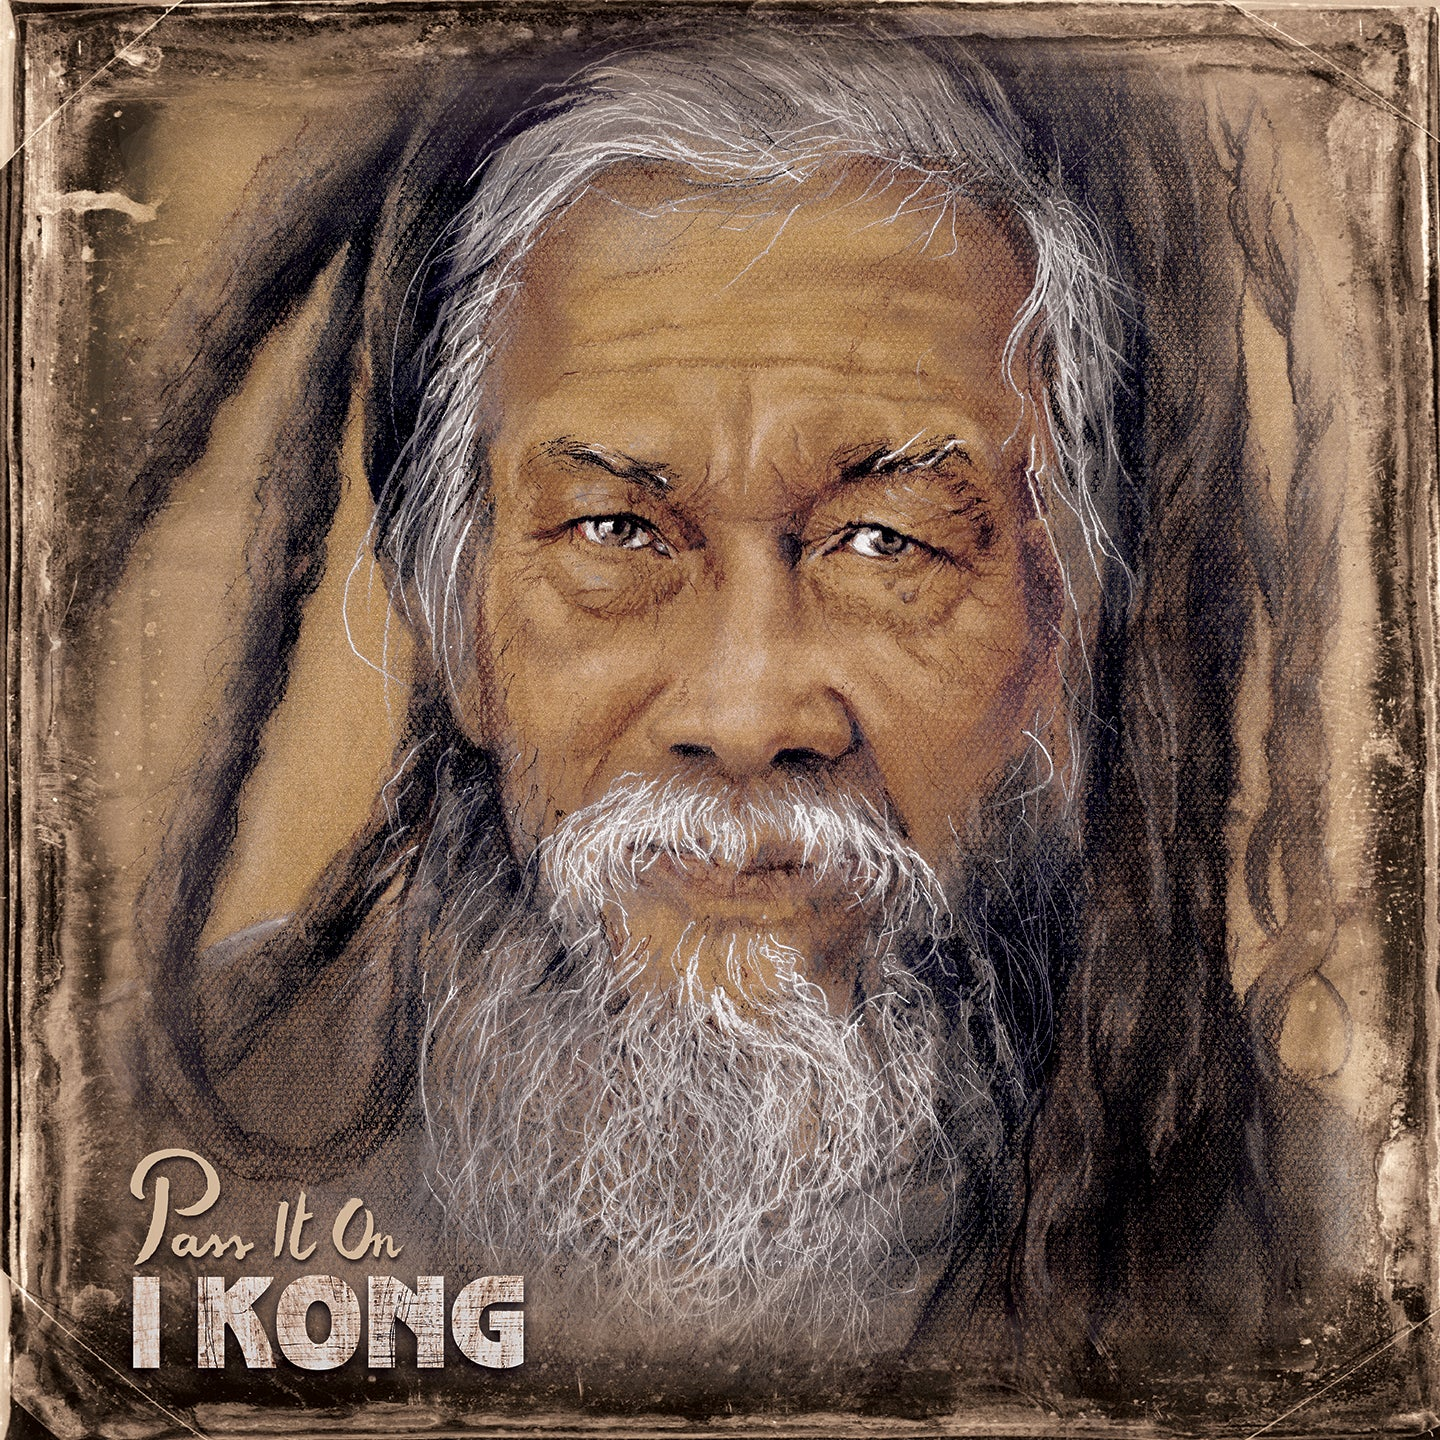 I Kong - Pass It On [Vinyl LP]